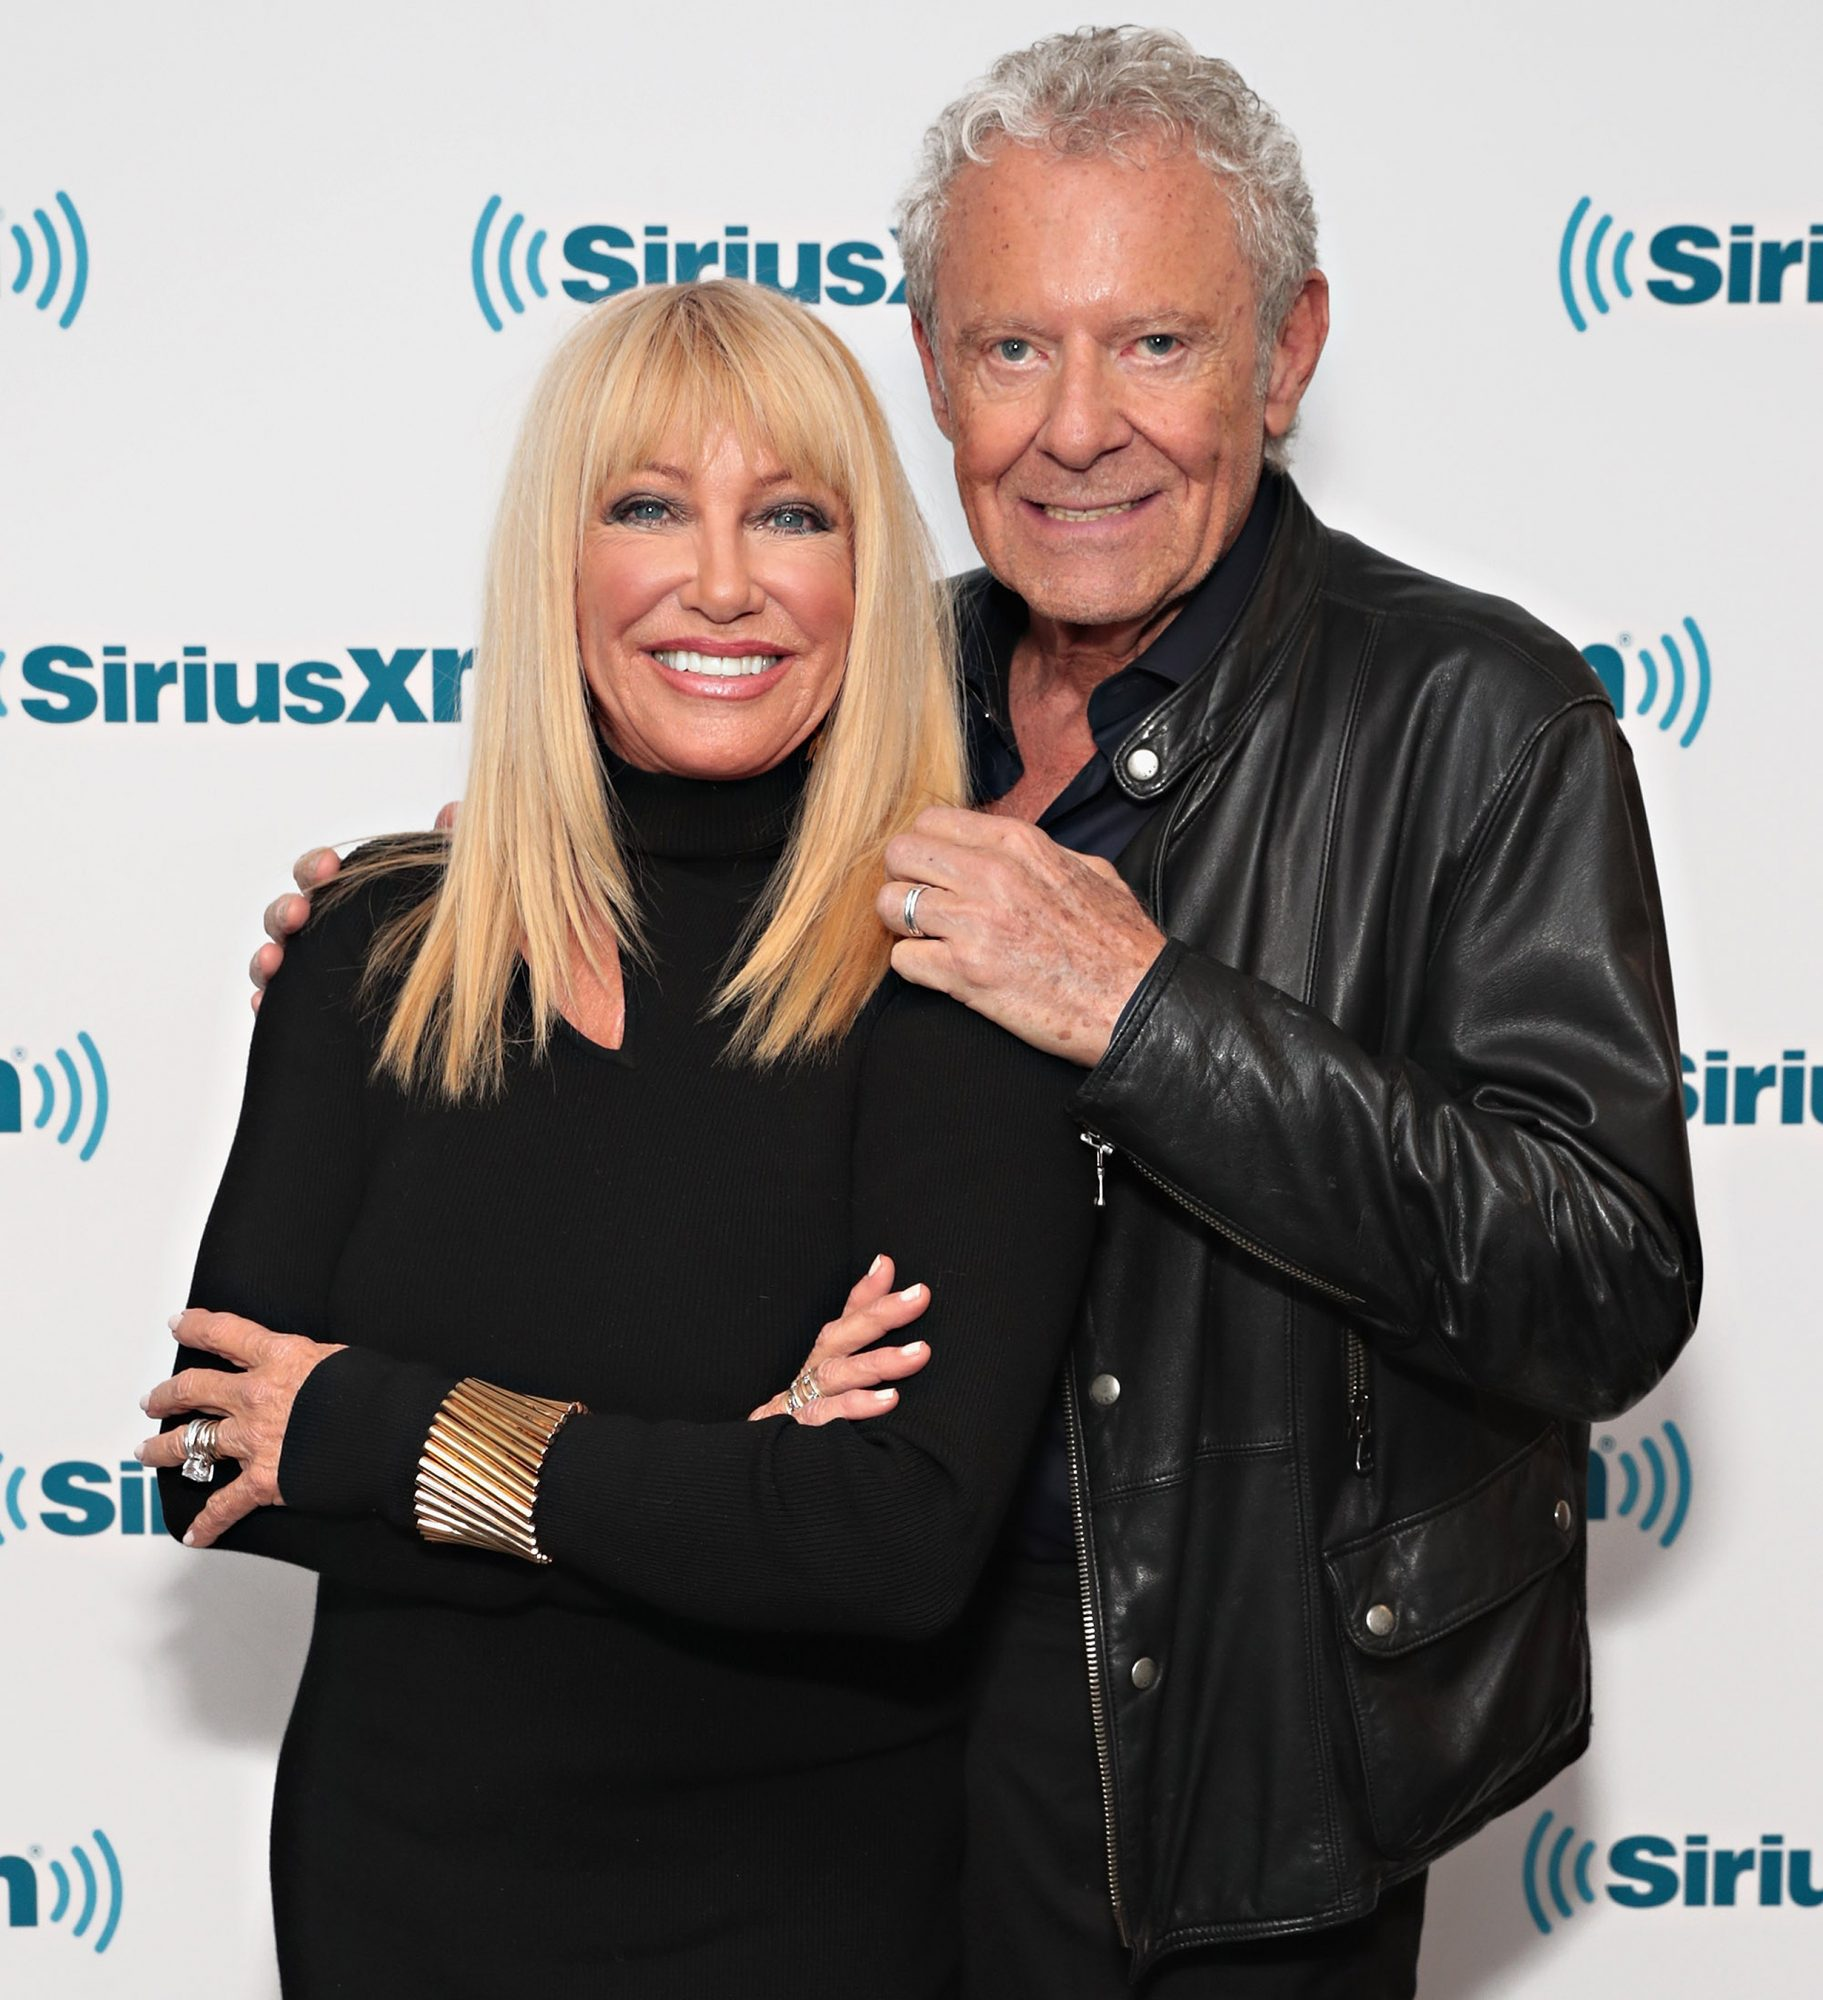 Suzanne Somers Gets Really Personal About Her Very Active Sex Life